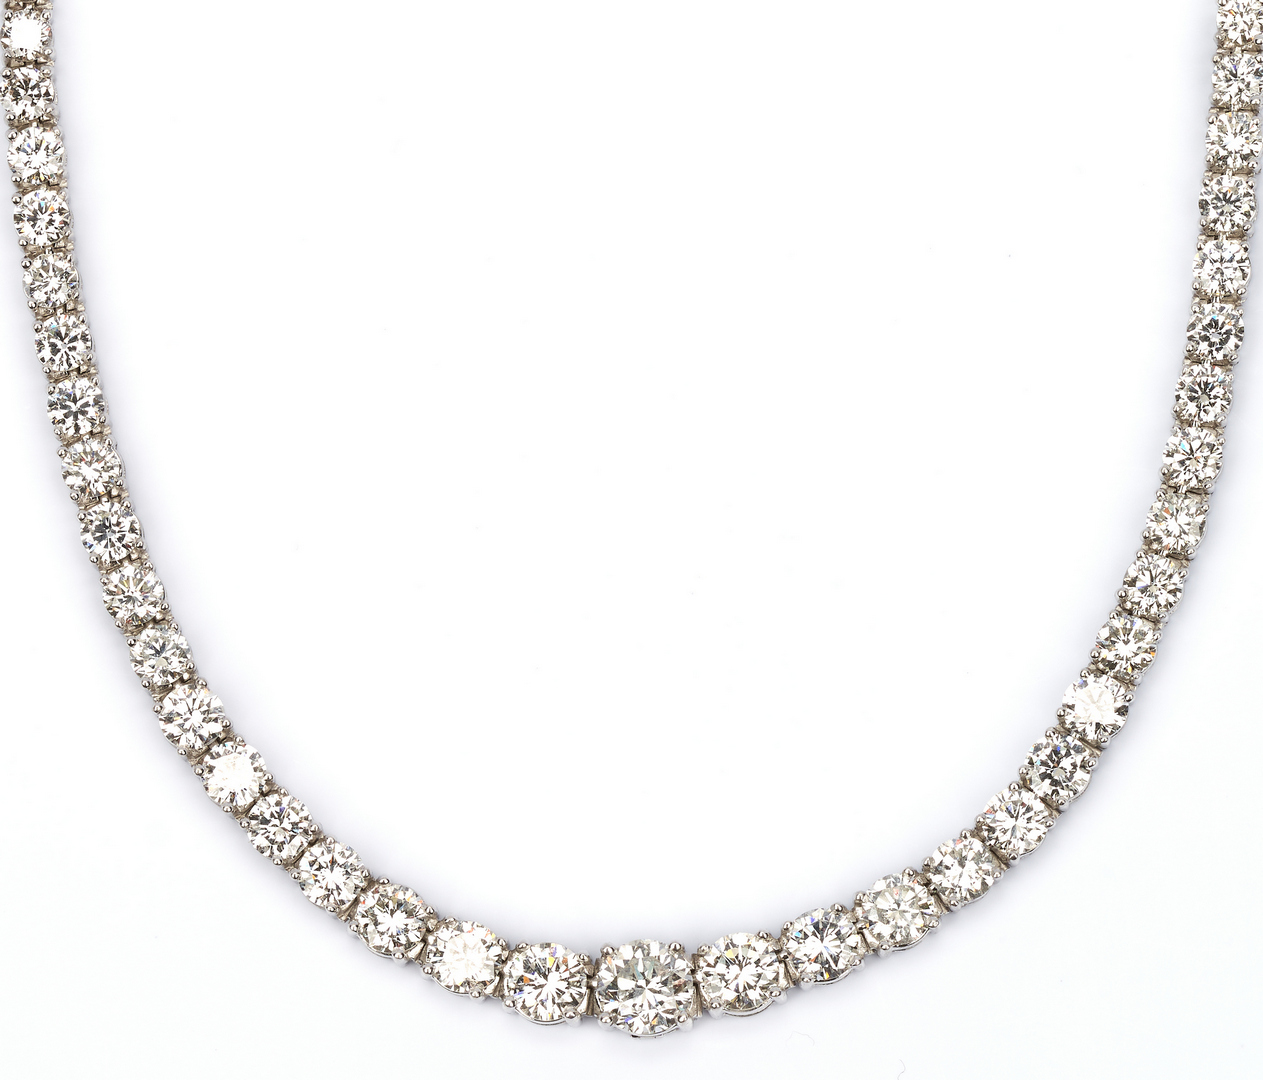 Lot 34: Diamond Eternity Necklace, approx. 22 Carats